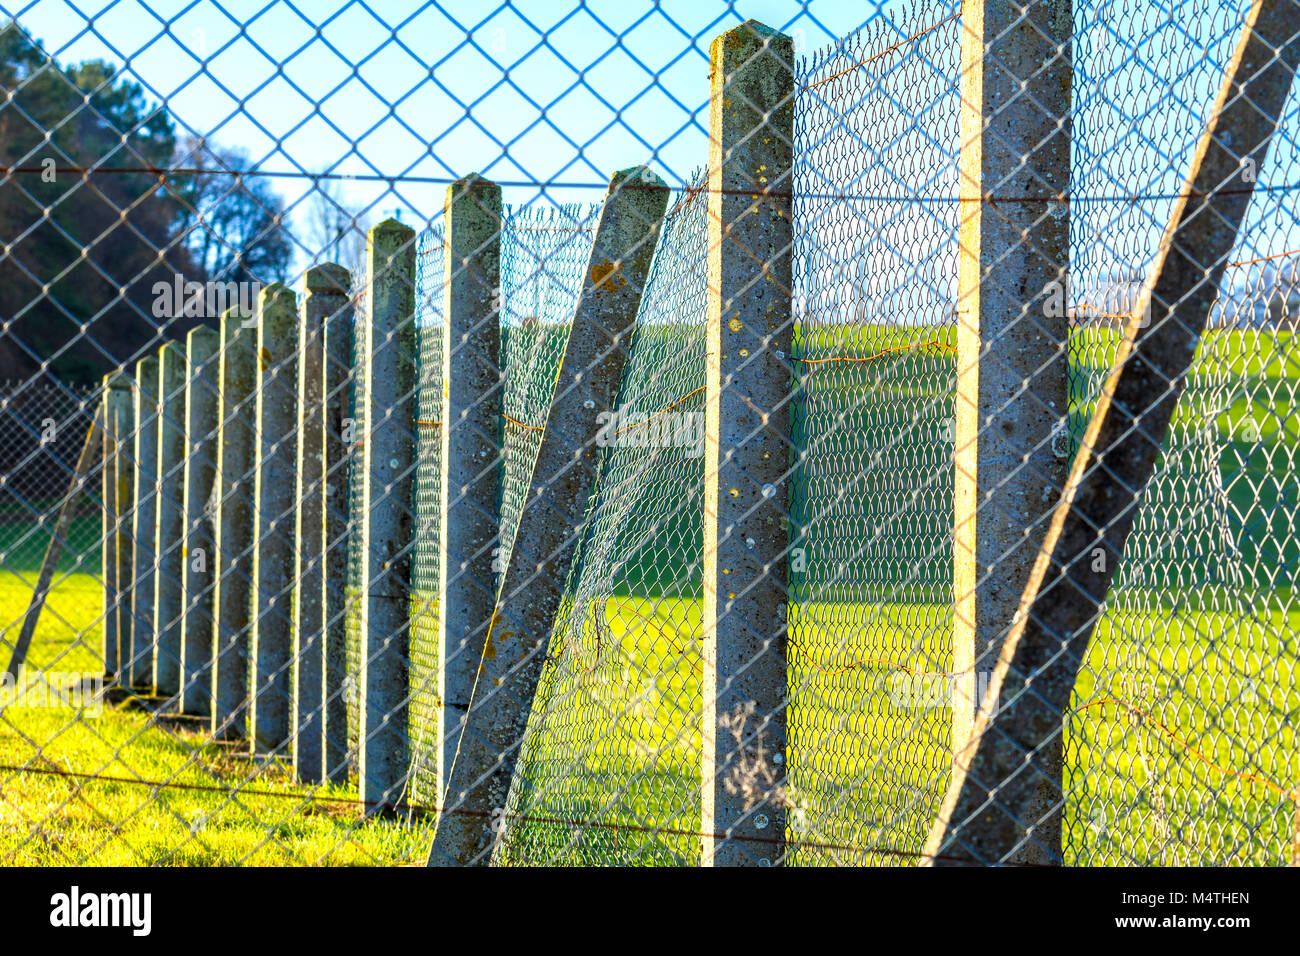 Wire netting on concrete posts. - Stock Image